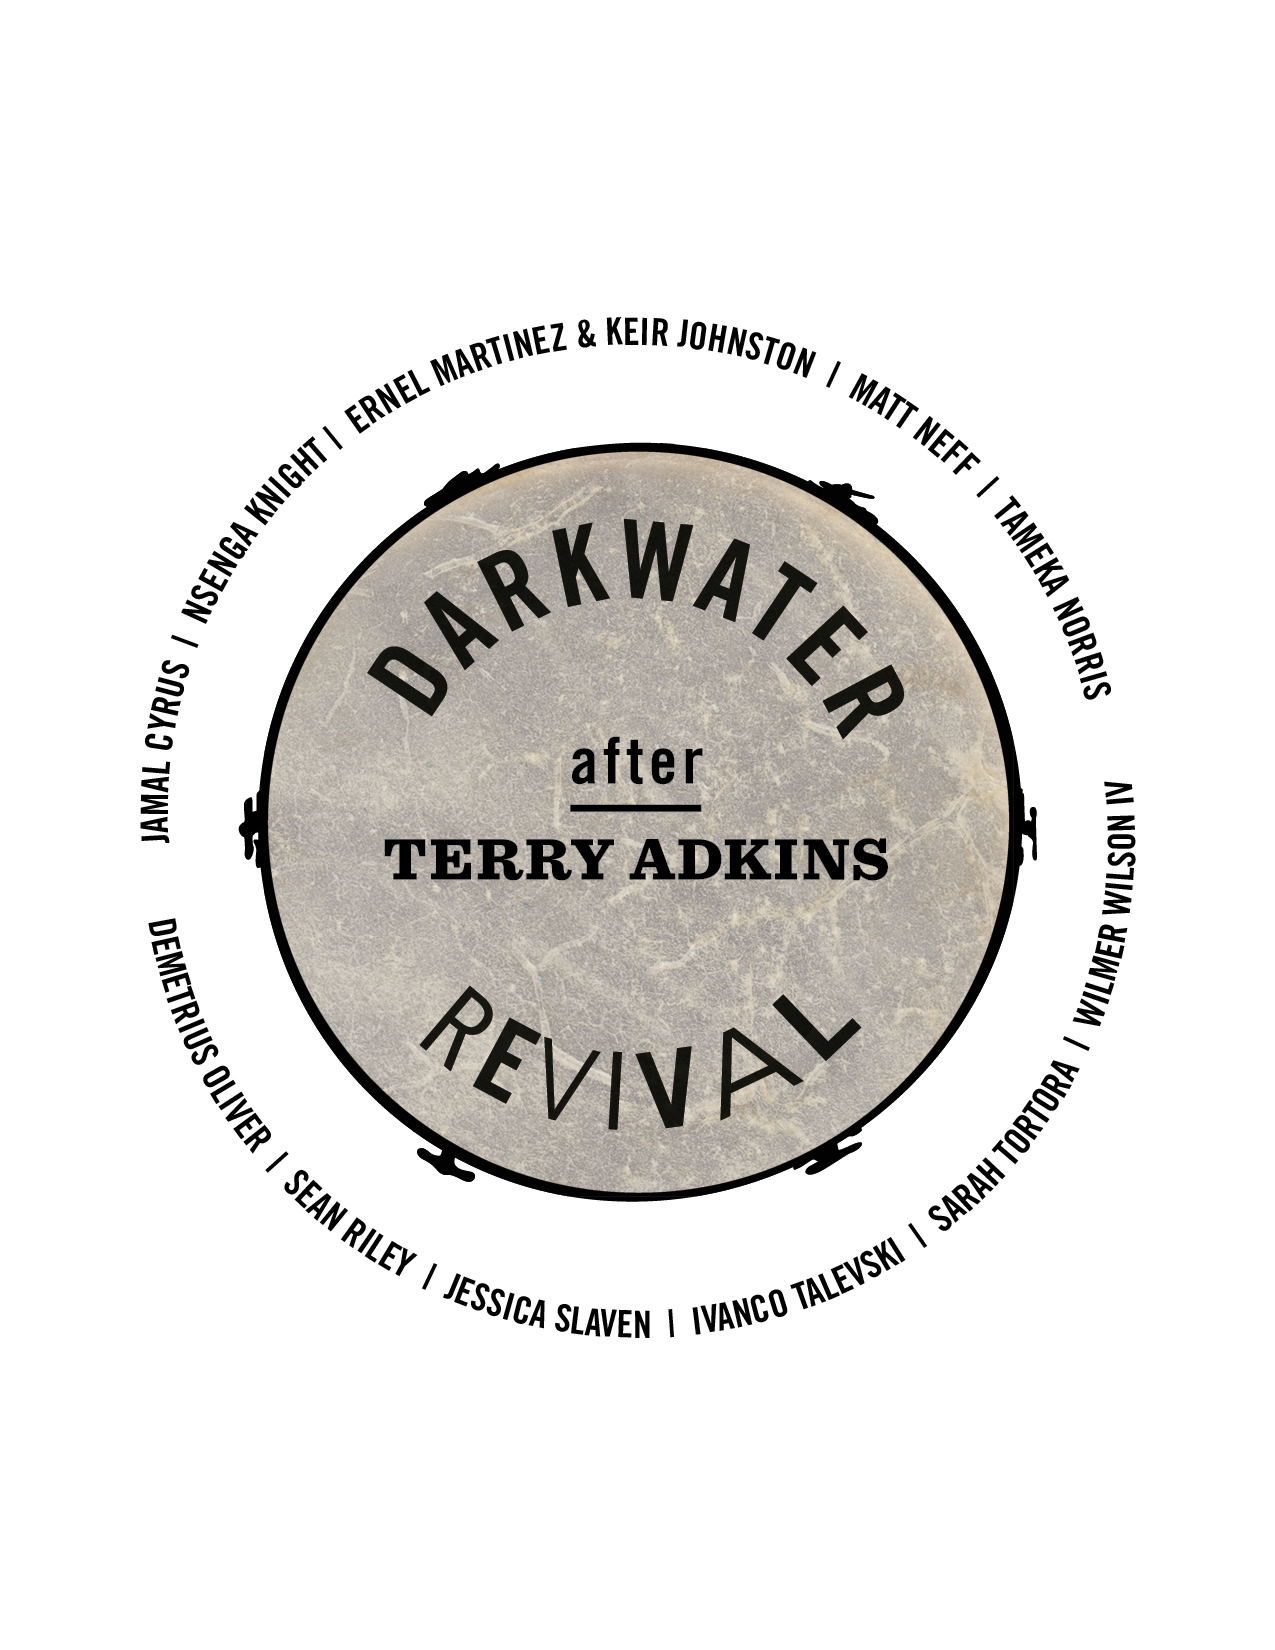 Darkwater Revival Logo with Artists